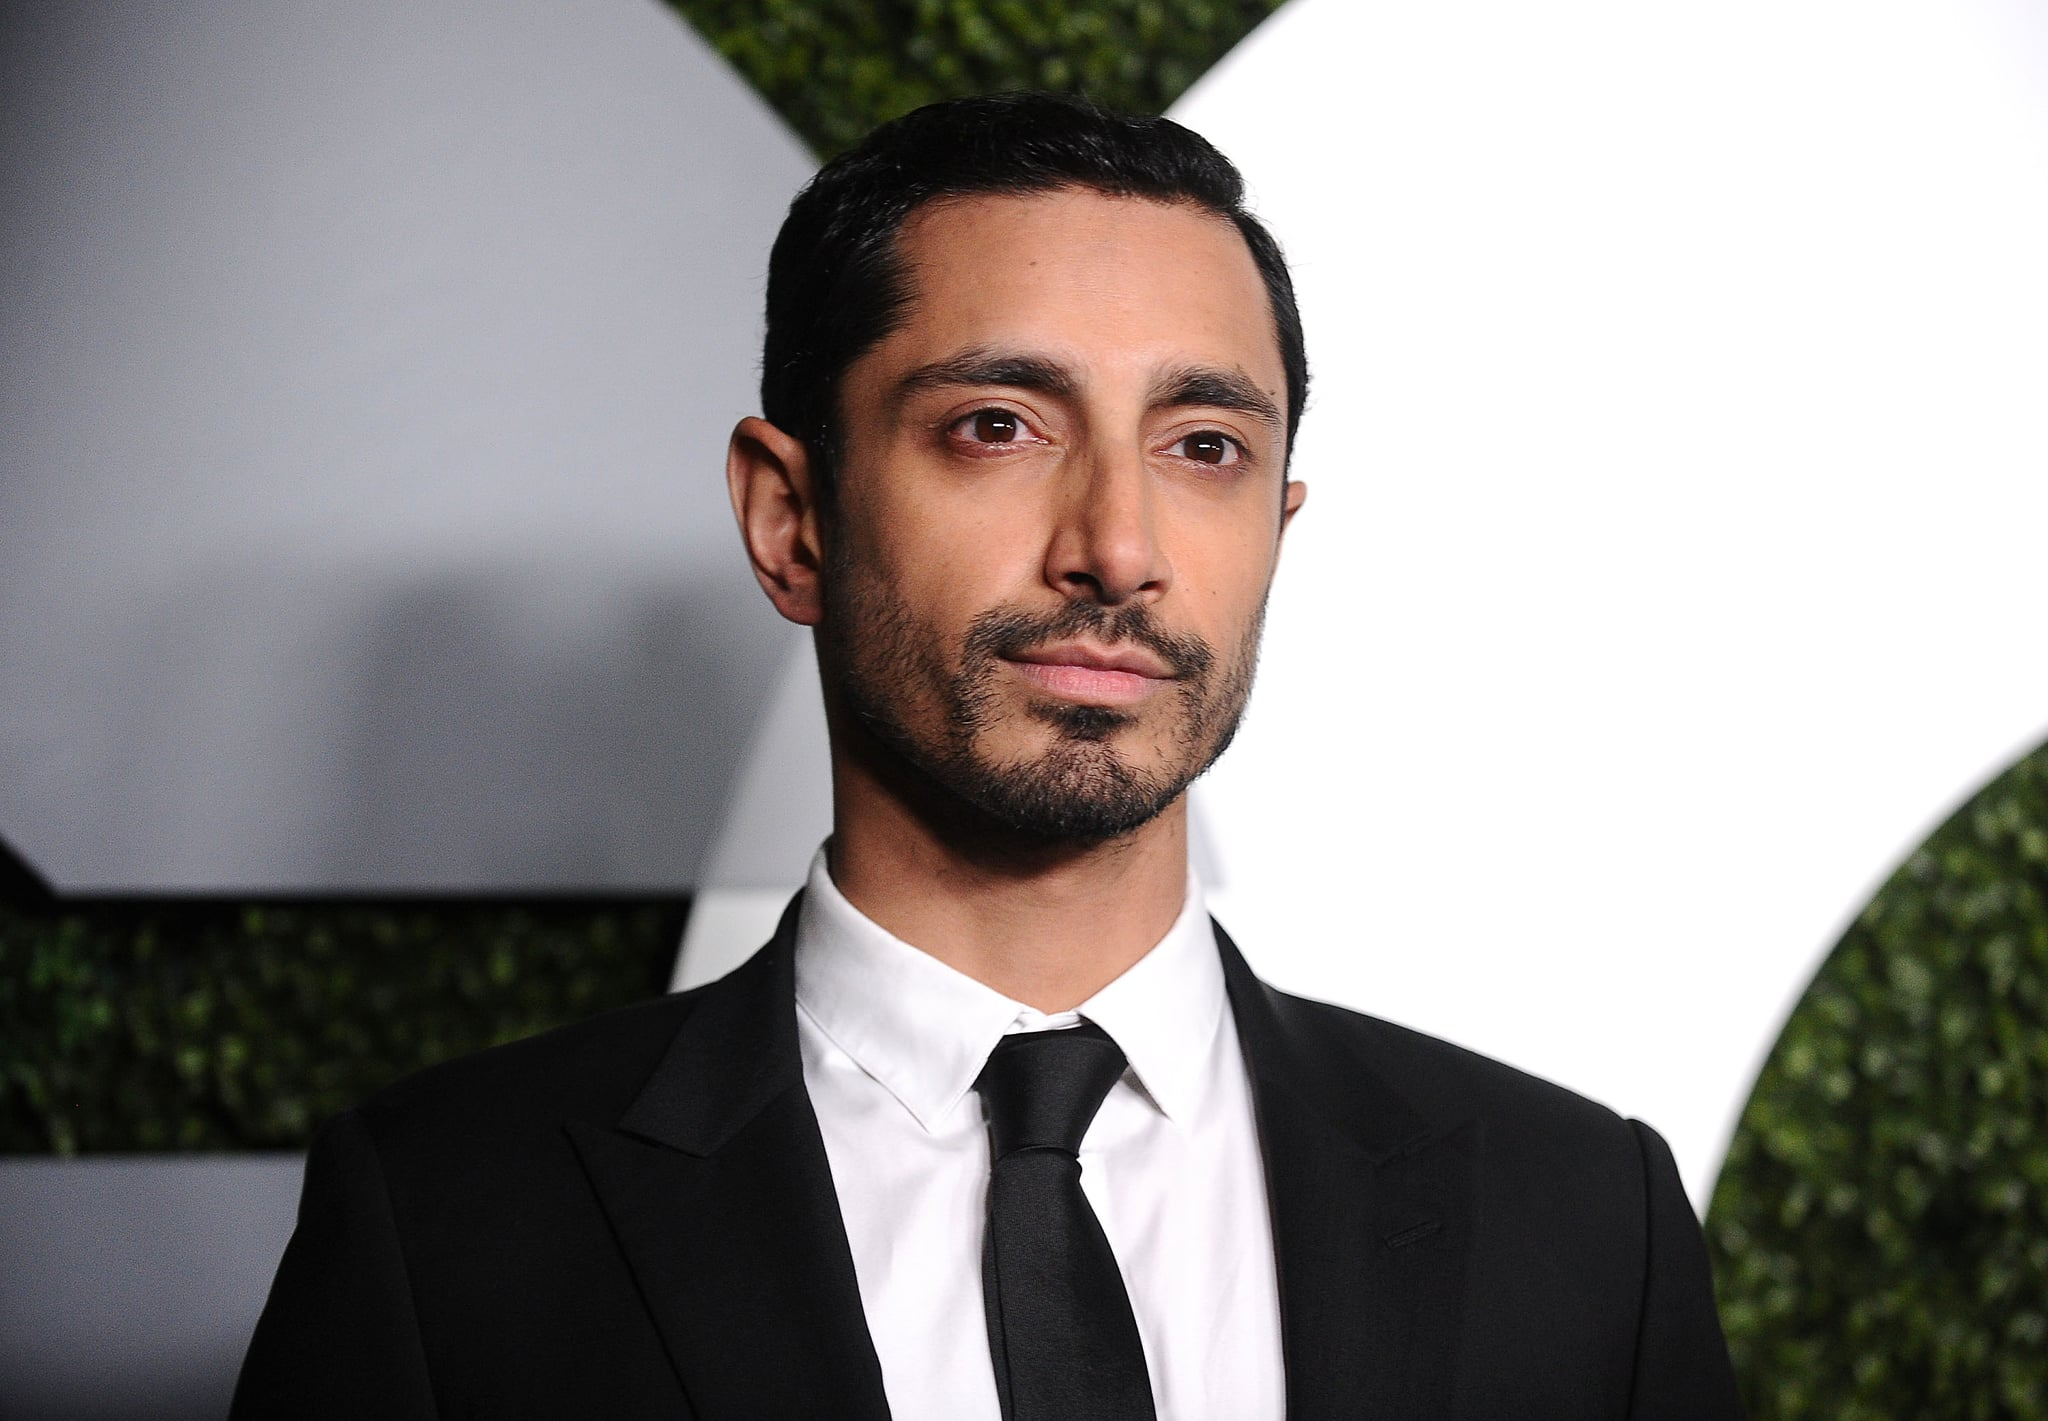 LOS ANGELES, CA - DECEMBER 08:  Actor Riz Ahmed attends the GQ Men of the Year party at Chateau Marmont on December 8, 2016 in Los Angeles, California.  (Photo by Jason LaVeris/FilmMagic)